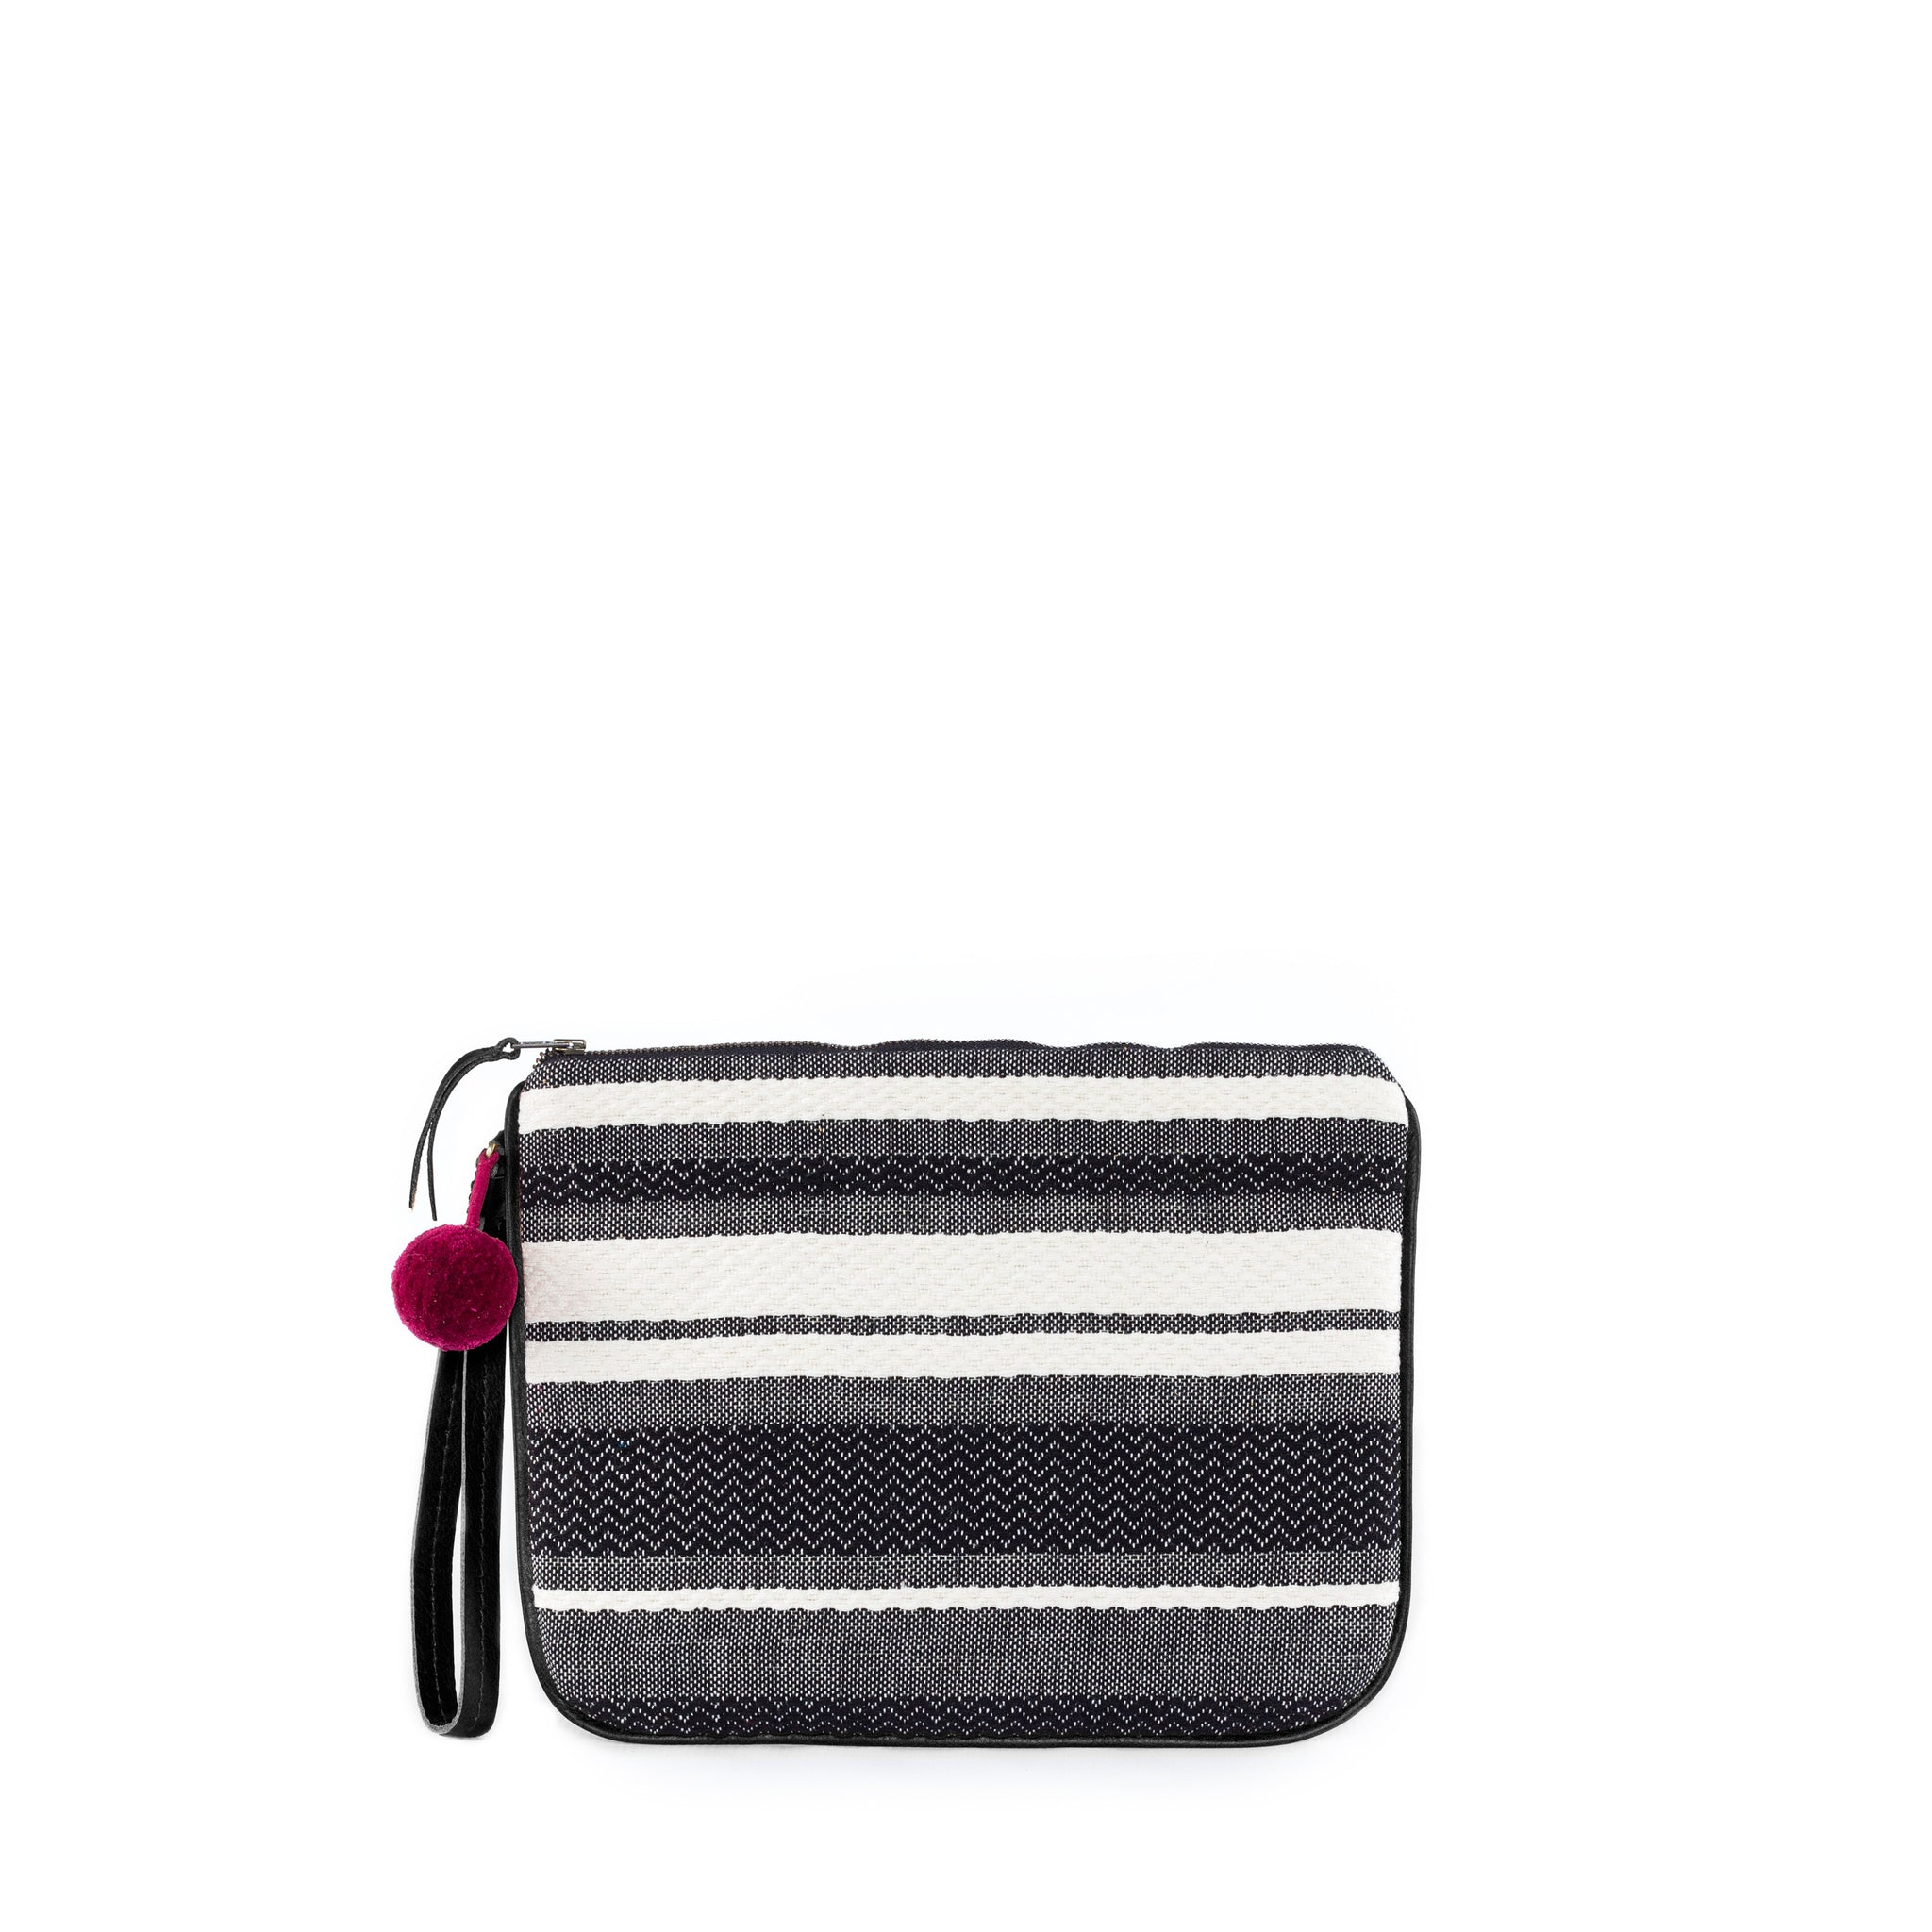 Hand woven Lily Wristlet - Ethical Shopping at Mercado Global